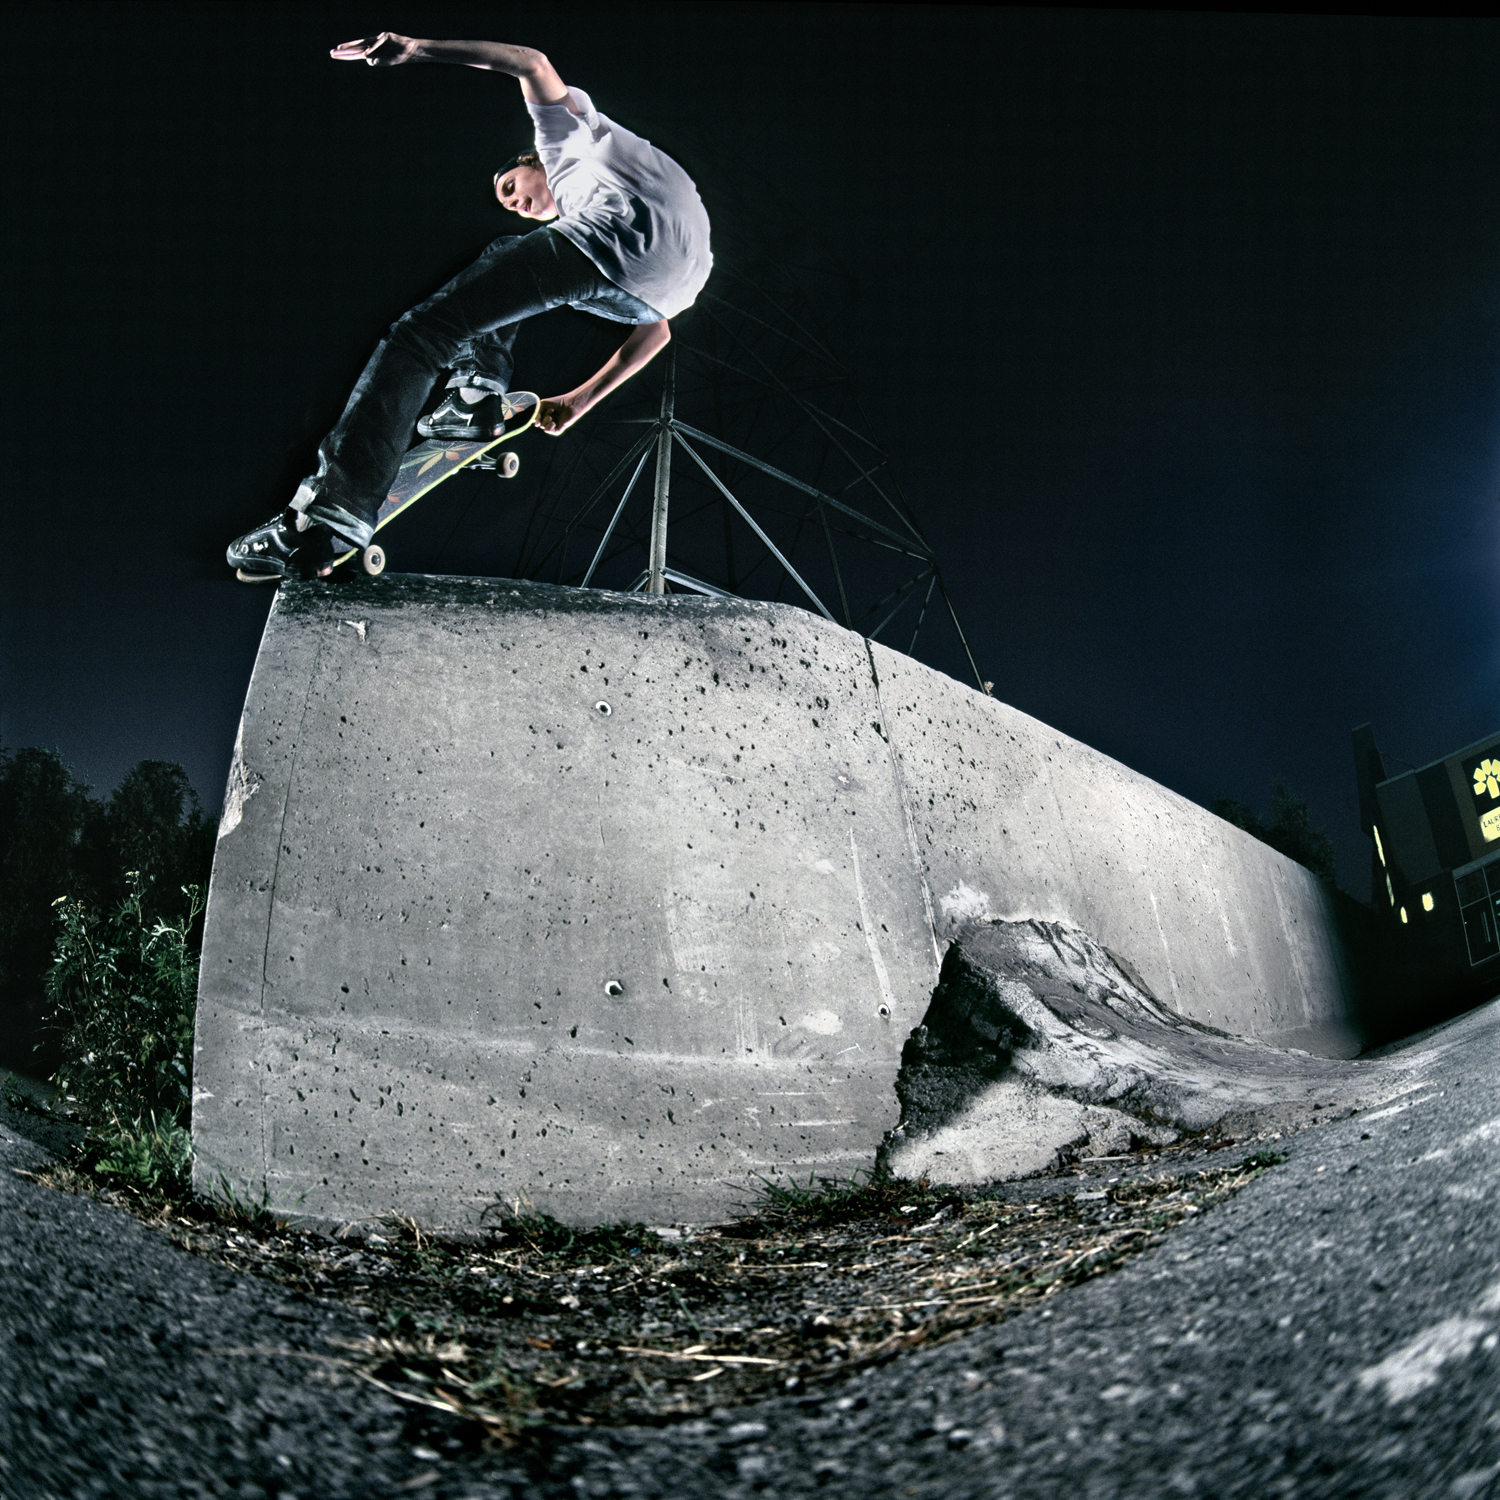 Sam Lind, Frontside Nosegrind, Ottawa, ON 2011